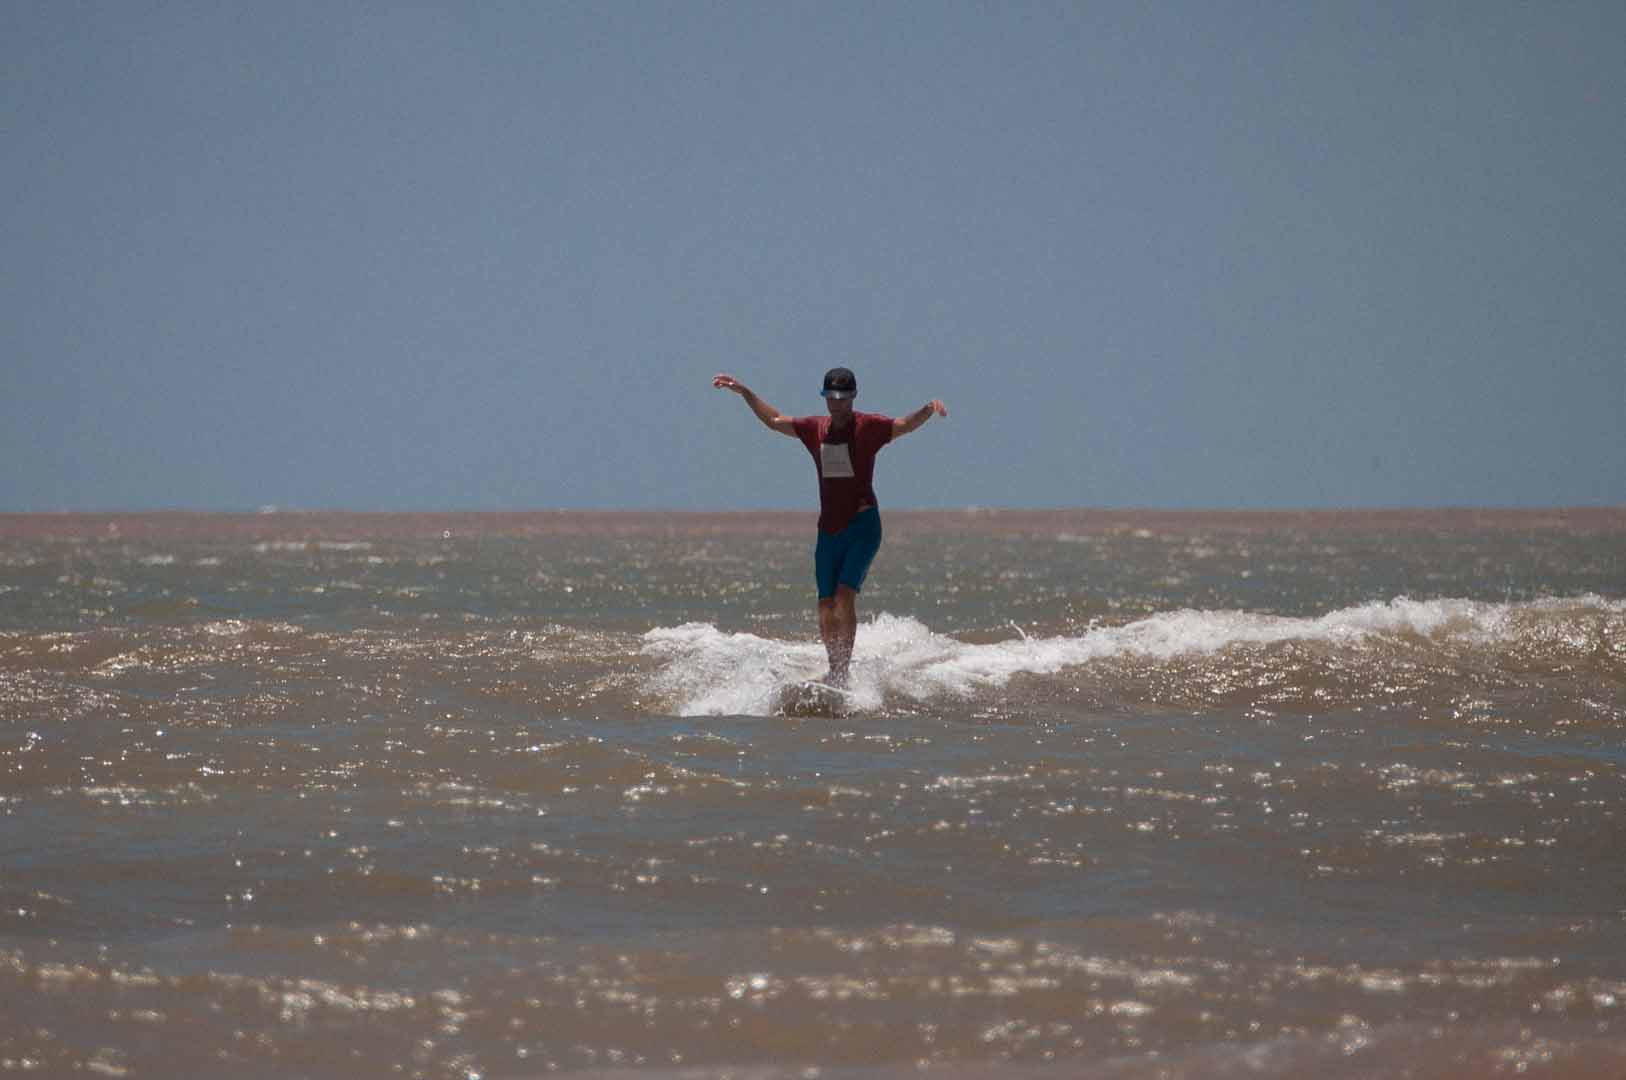 SurfsideLateJune_20150627_174